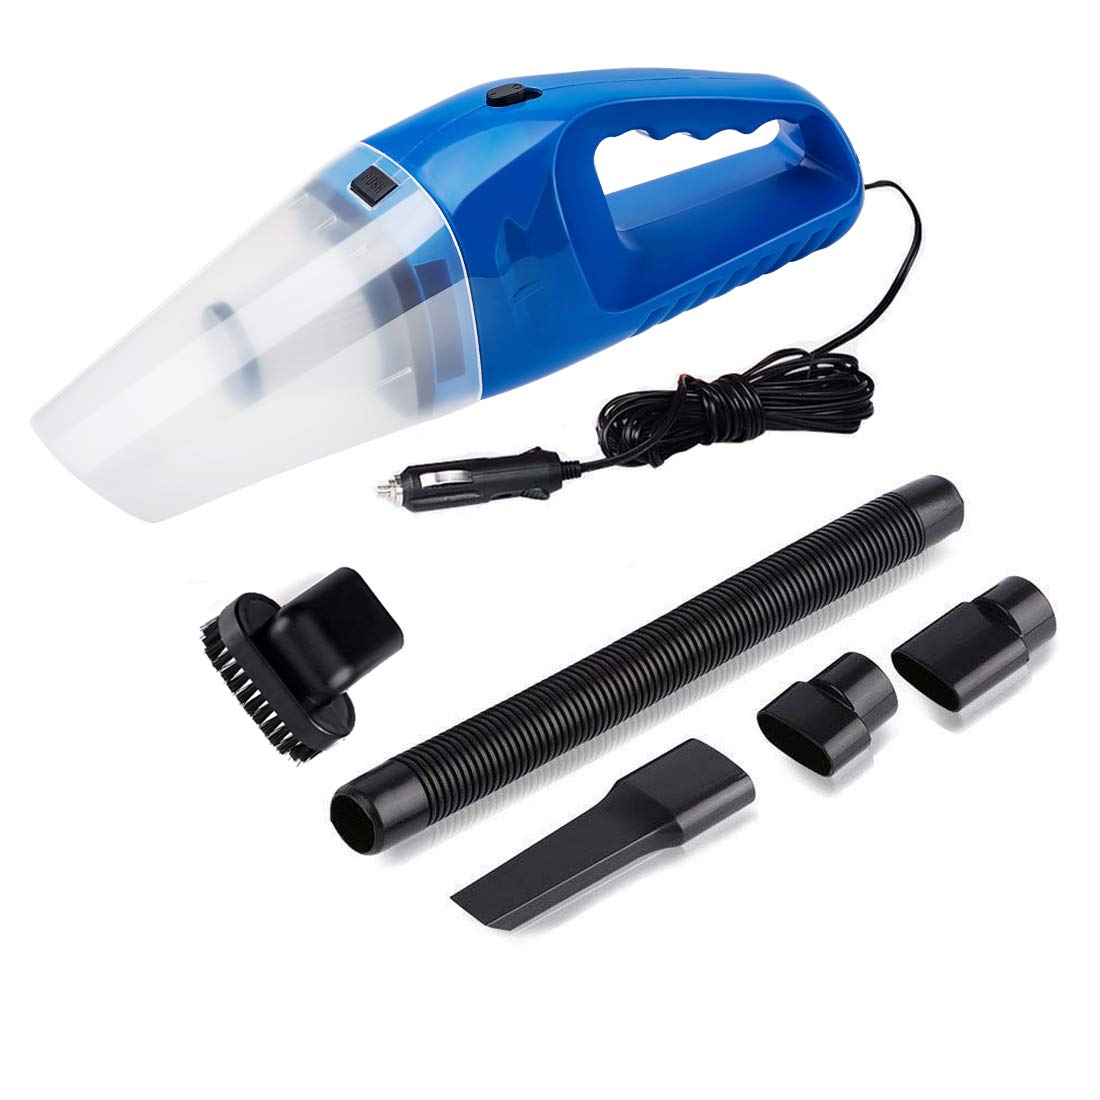 Car Vacuum Cleaner DC 12V Wet Dry Auto Dustbuster Portable Handheld Auto Vacuum Cleaner for Car 4000Pa Suction 120W Car Hoover with HEAP Filter & 5 Meters/16.4 FT Power Cord(1 Yr Warranty) Blue kokeo